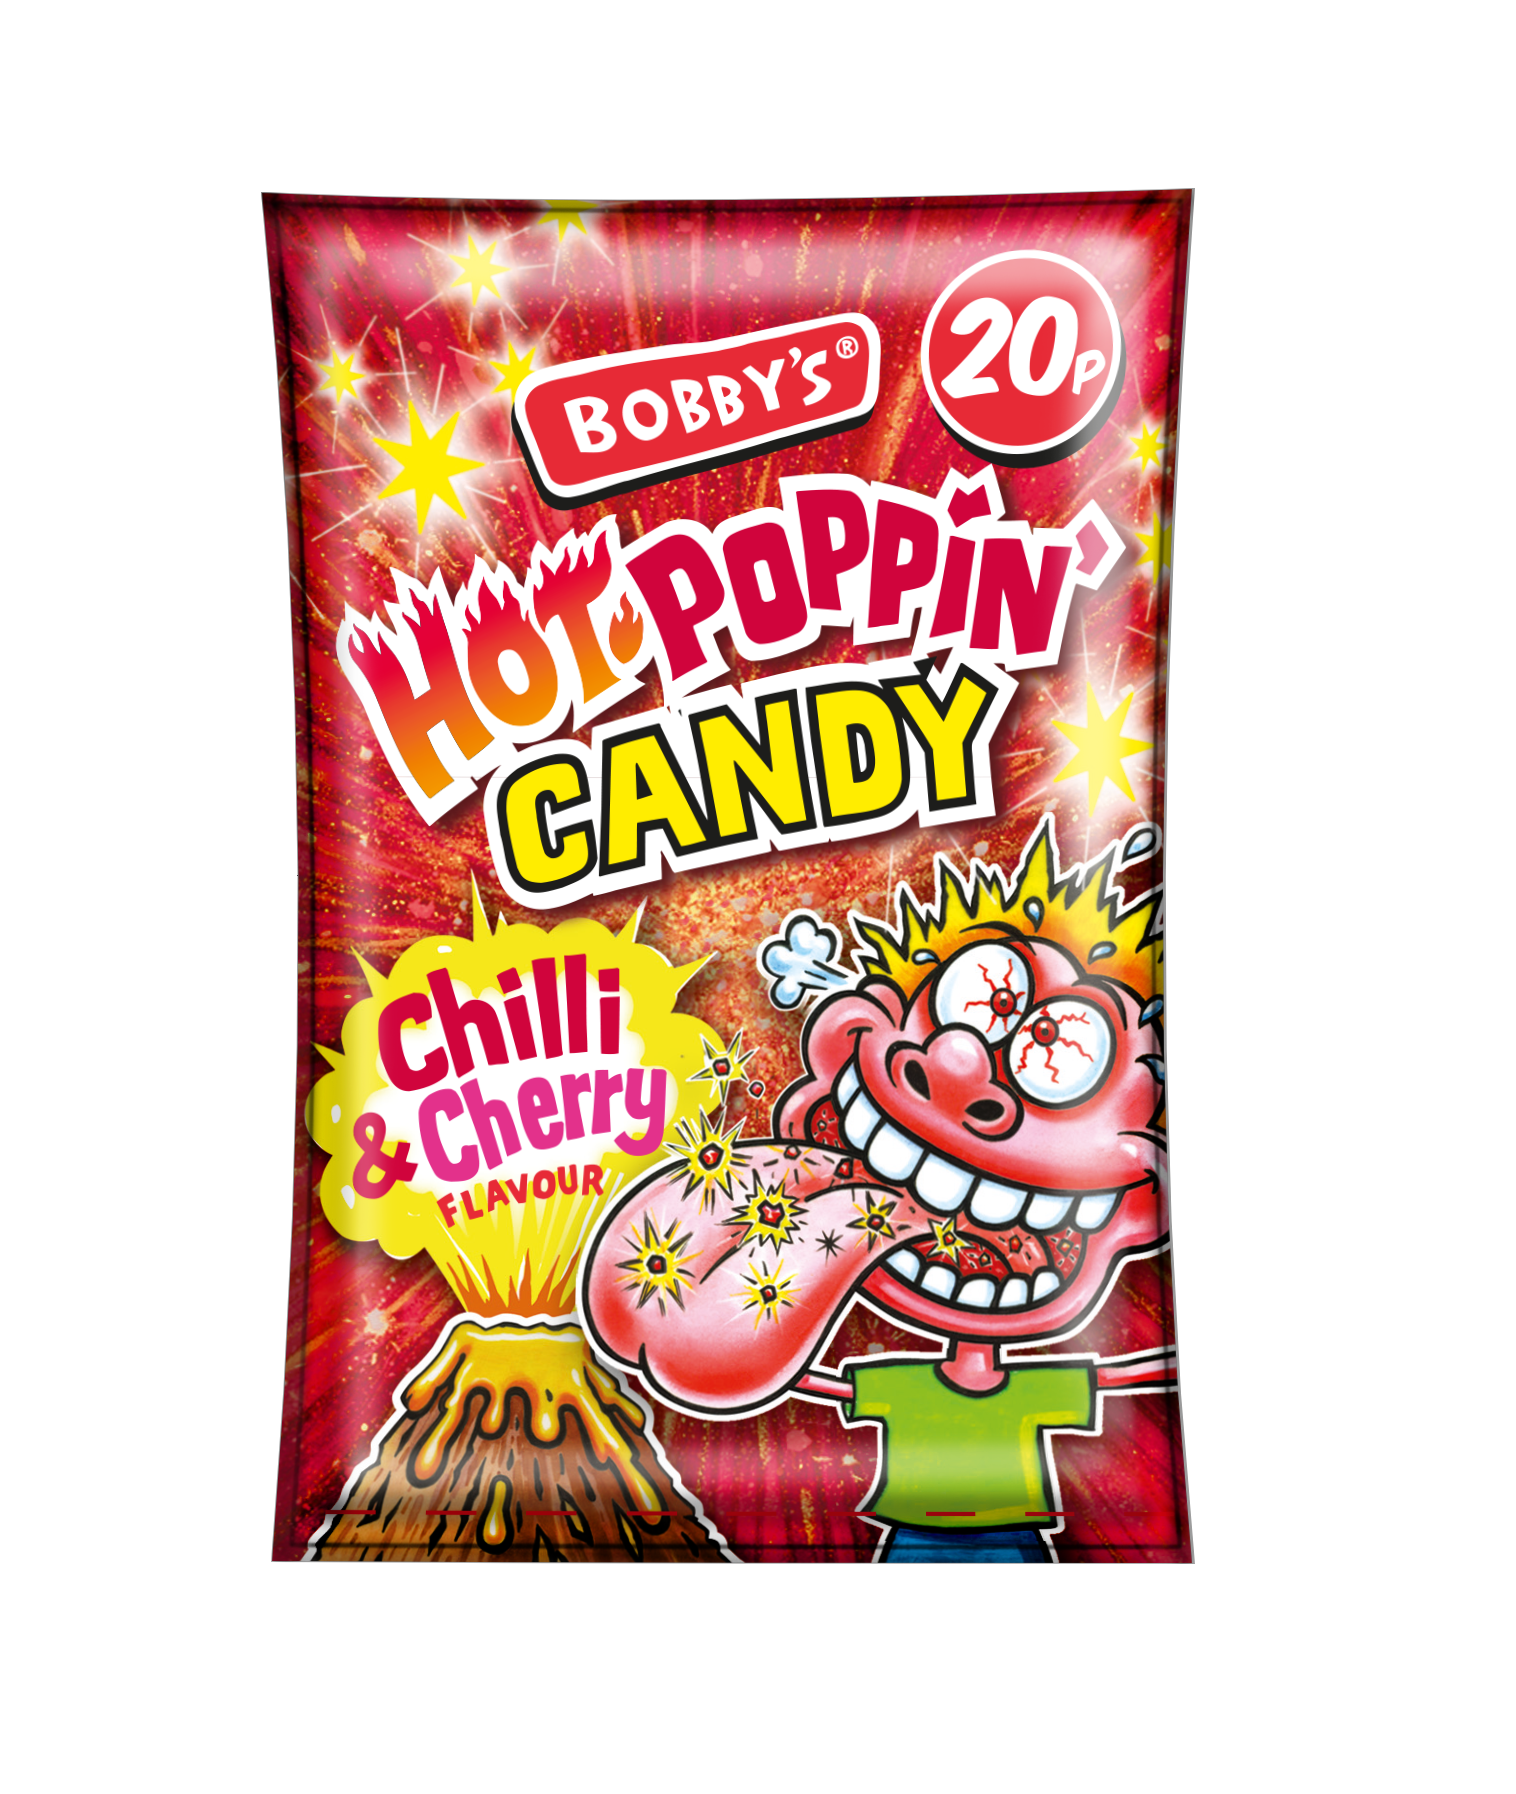 Hot Poppin' Candy